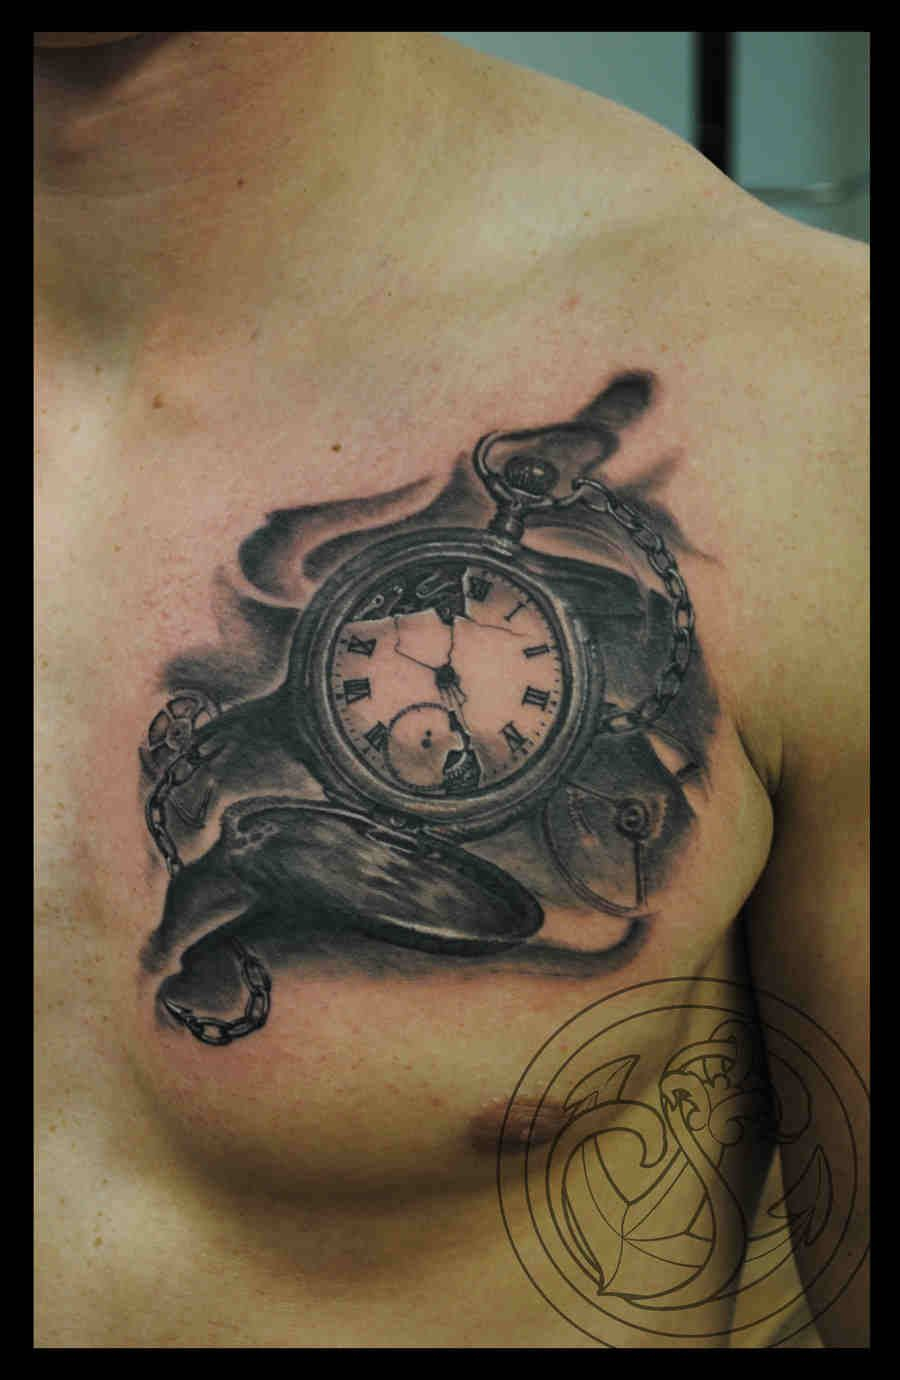 Chest Tattoo Projects To Try Pocket Watch Tattoos Watch Tattoos throughout sizing 900 X 1380